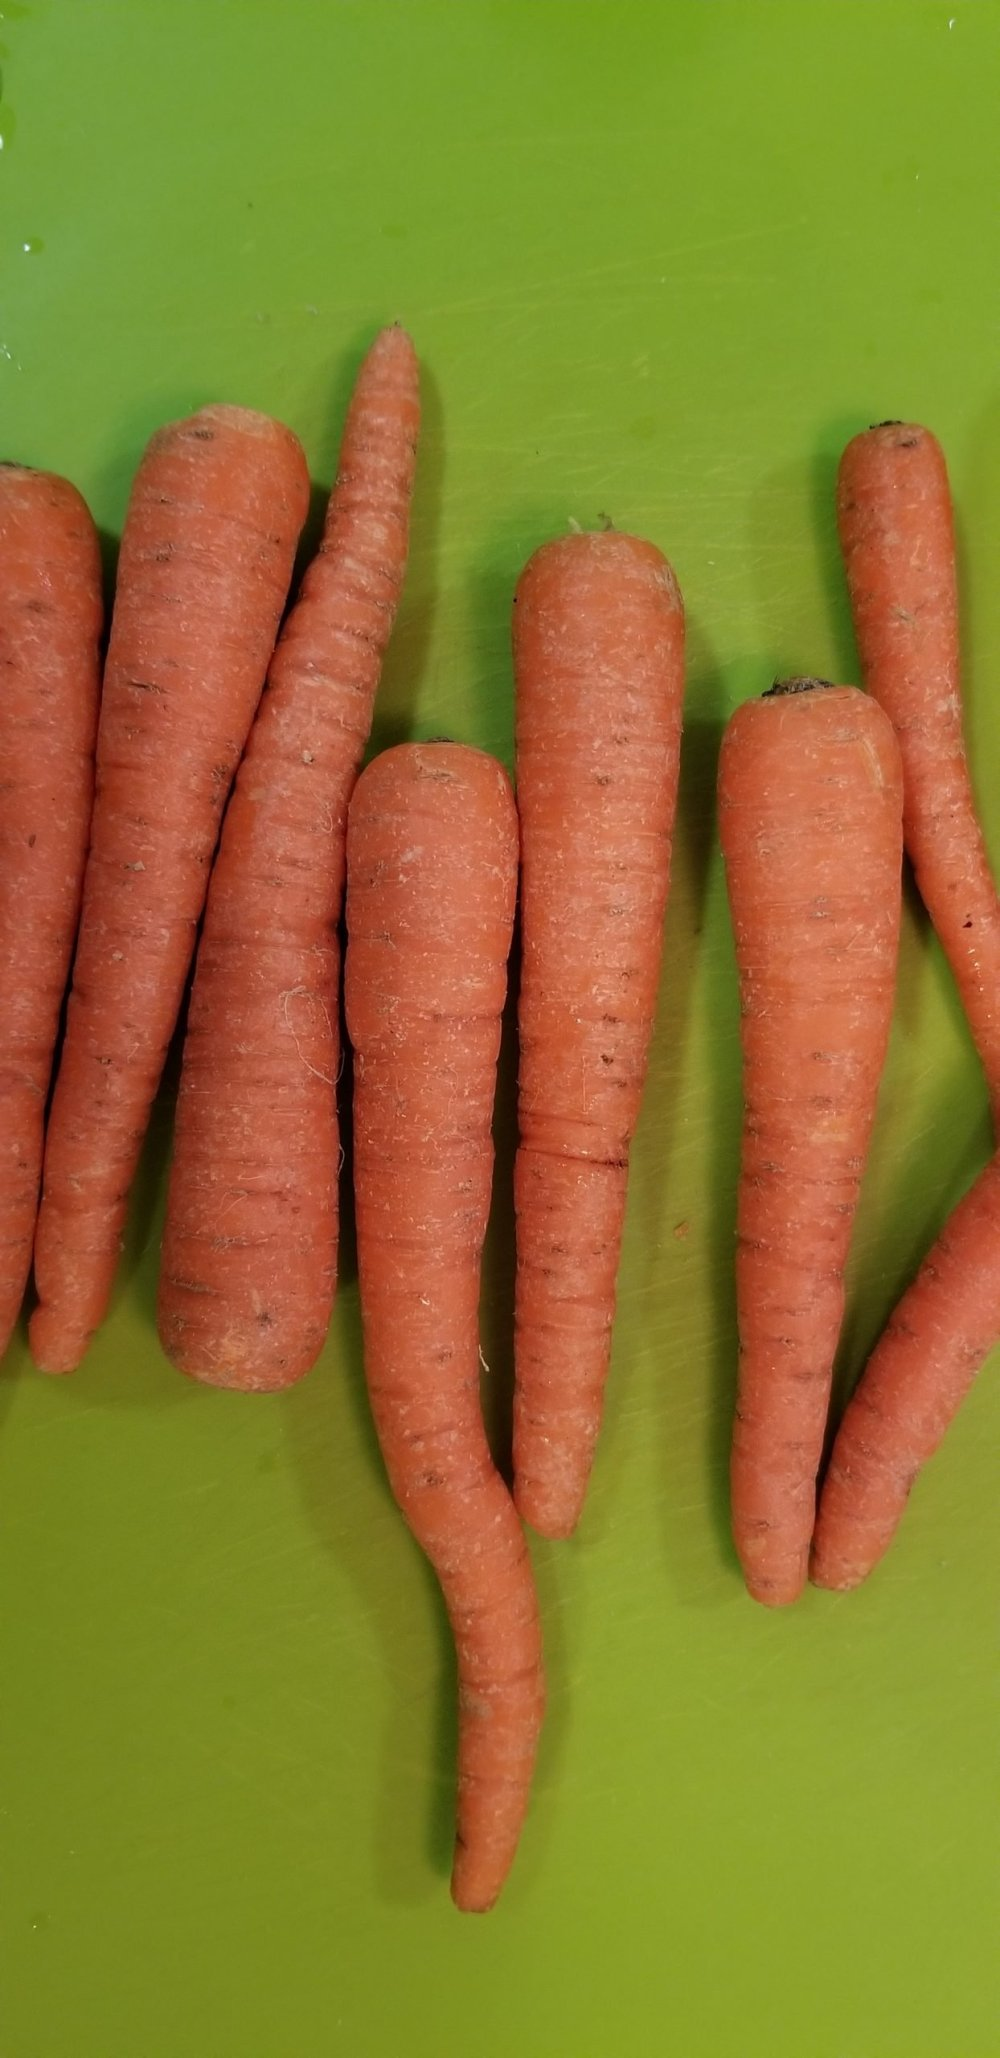 Whole carrots on a green chopping board